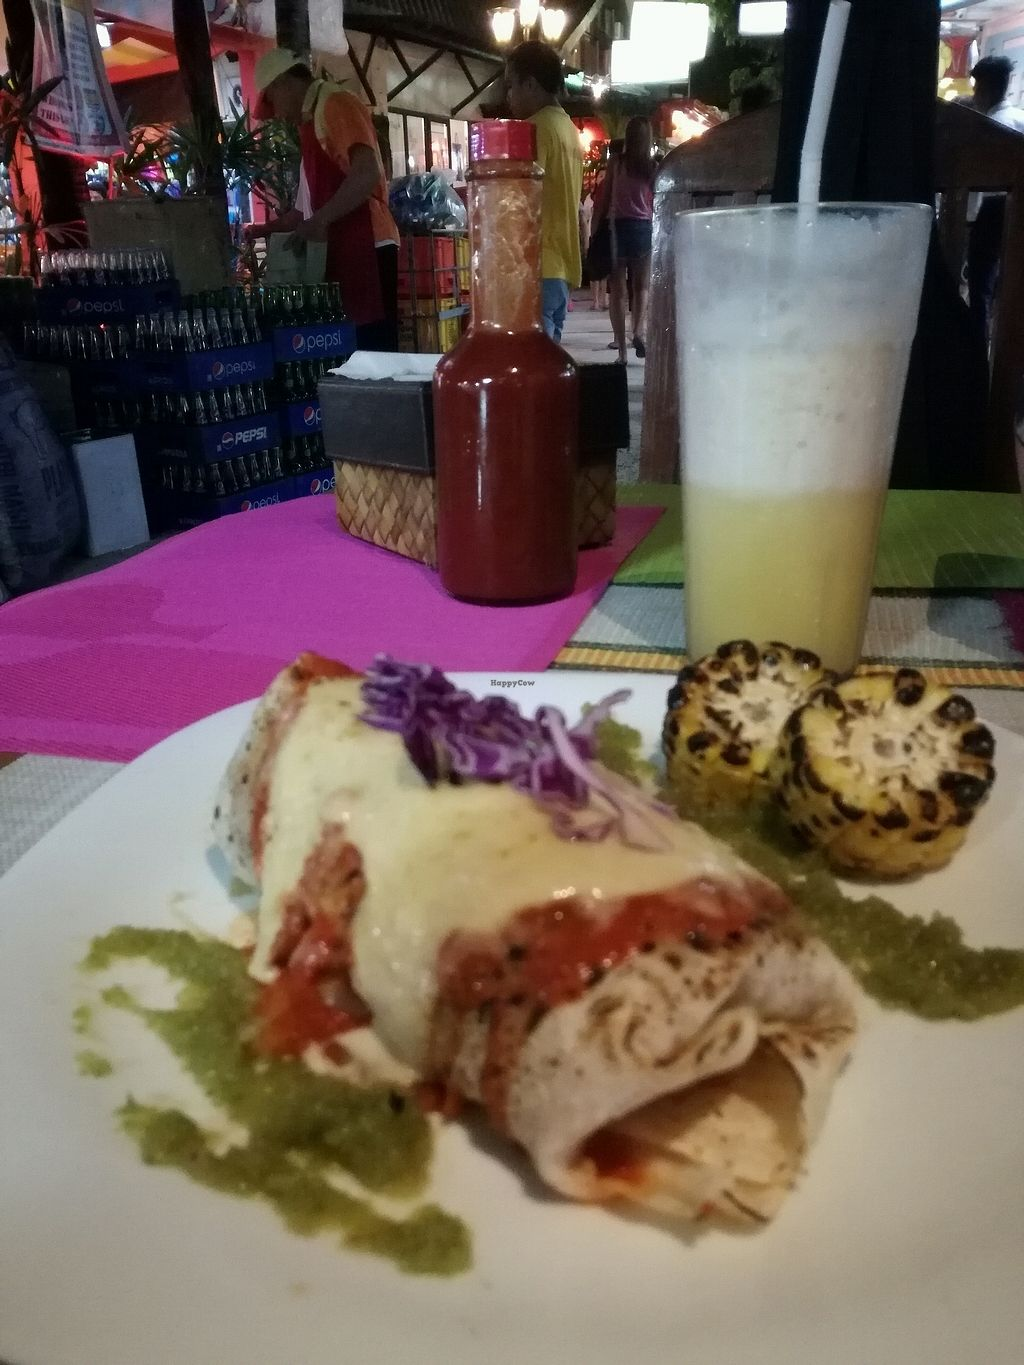 """Photo of Tres Amigos Mexican Cantina  by <a href=""""/members/profile/bex555"""">bex555</a> <br/>vegan enchilada - delicious!! <br/> February 20, 2018  - <a href='/contact/abuse/image/103736/361546'>Report</a>"""